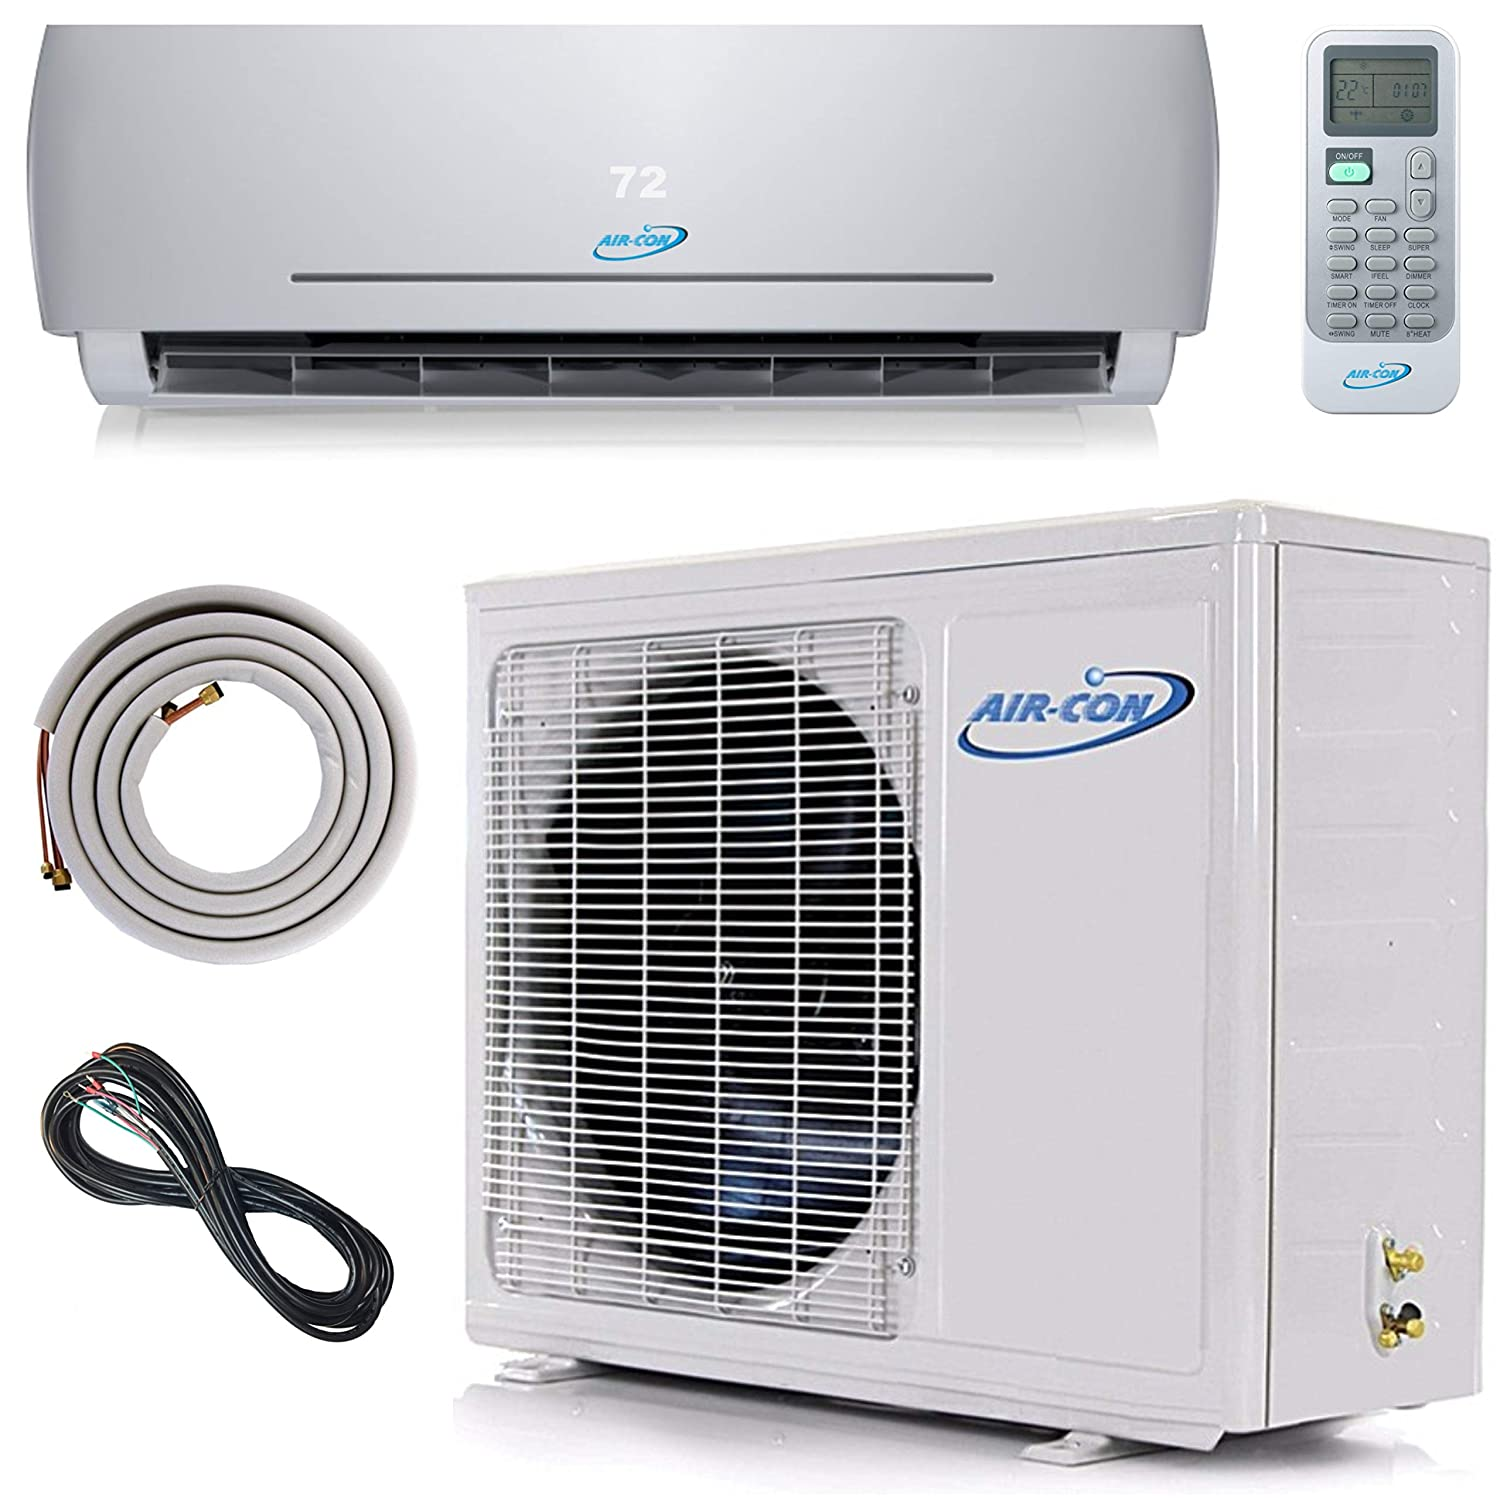 12000 BTU Mini Split Ductless Air Conditioner – 21 SEER - Includes Free 12' Lineset and Wiring - Arrives 100% Ready to Install - Pre-Charged Inverter Compressor – 1 Ton Heat Pump - USA Parts and Tech